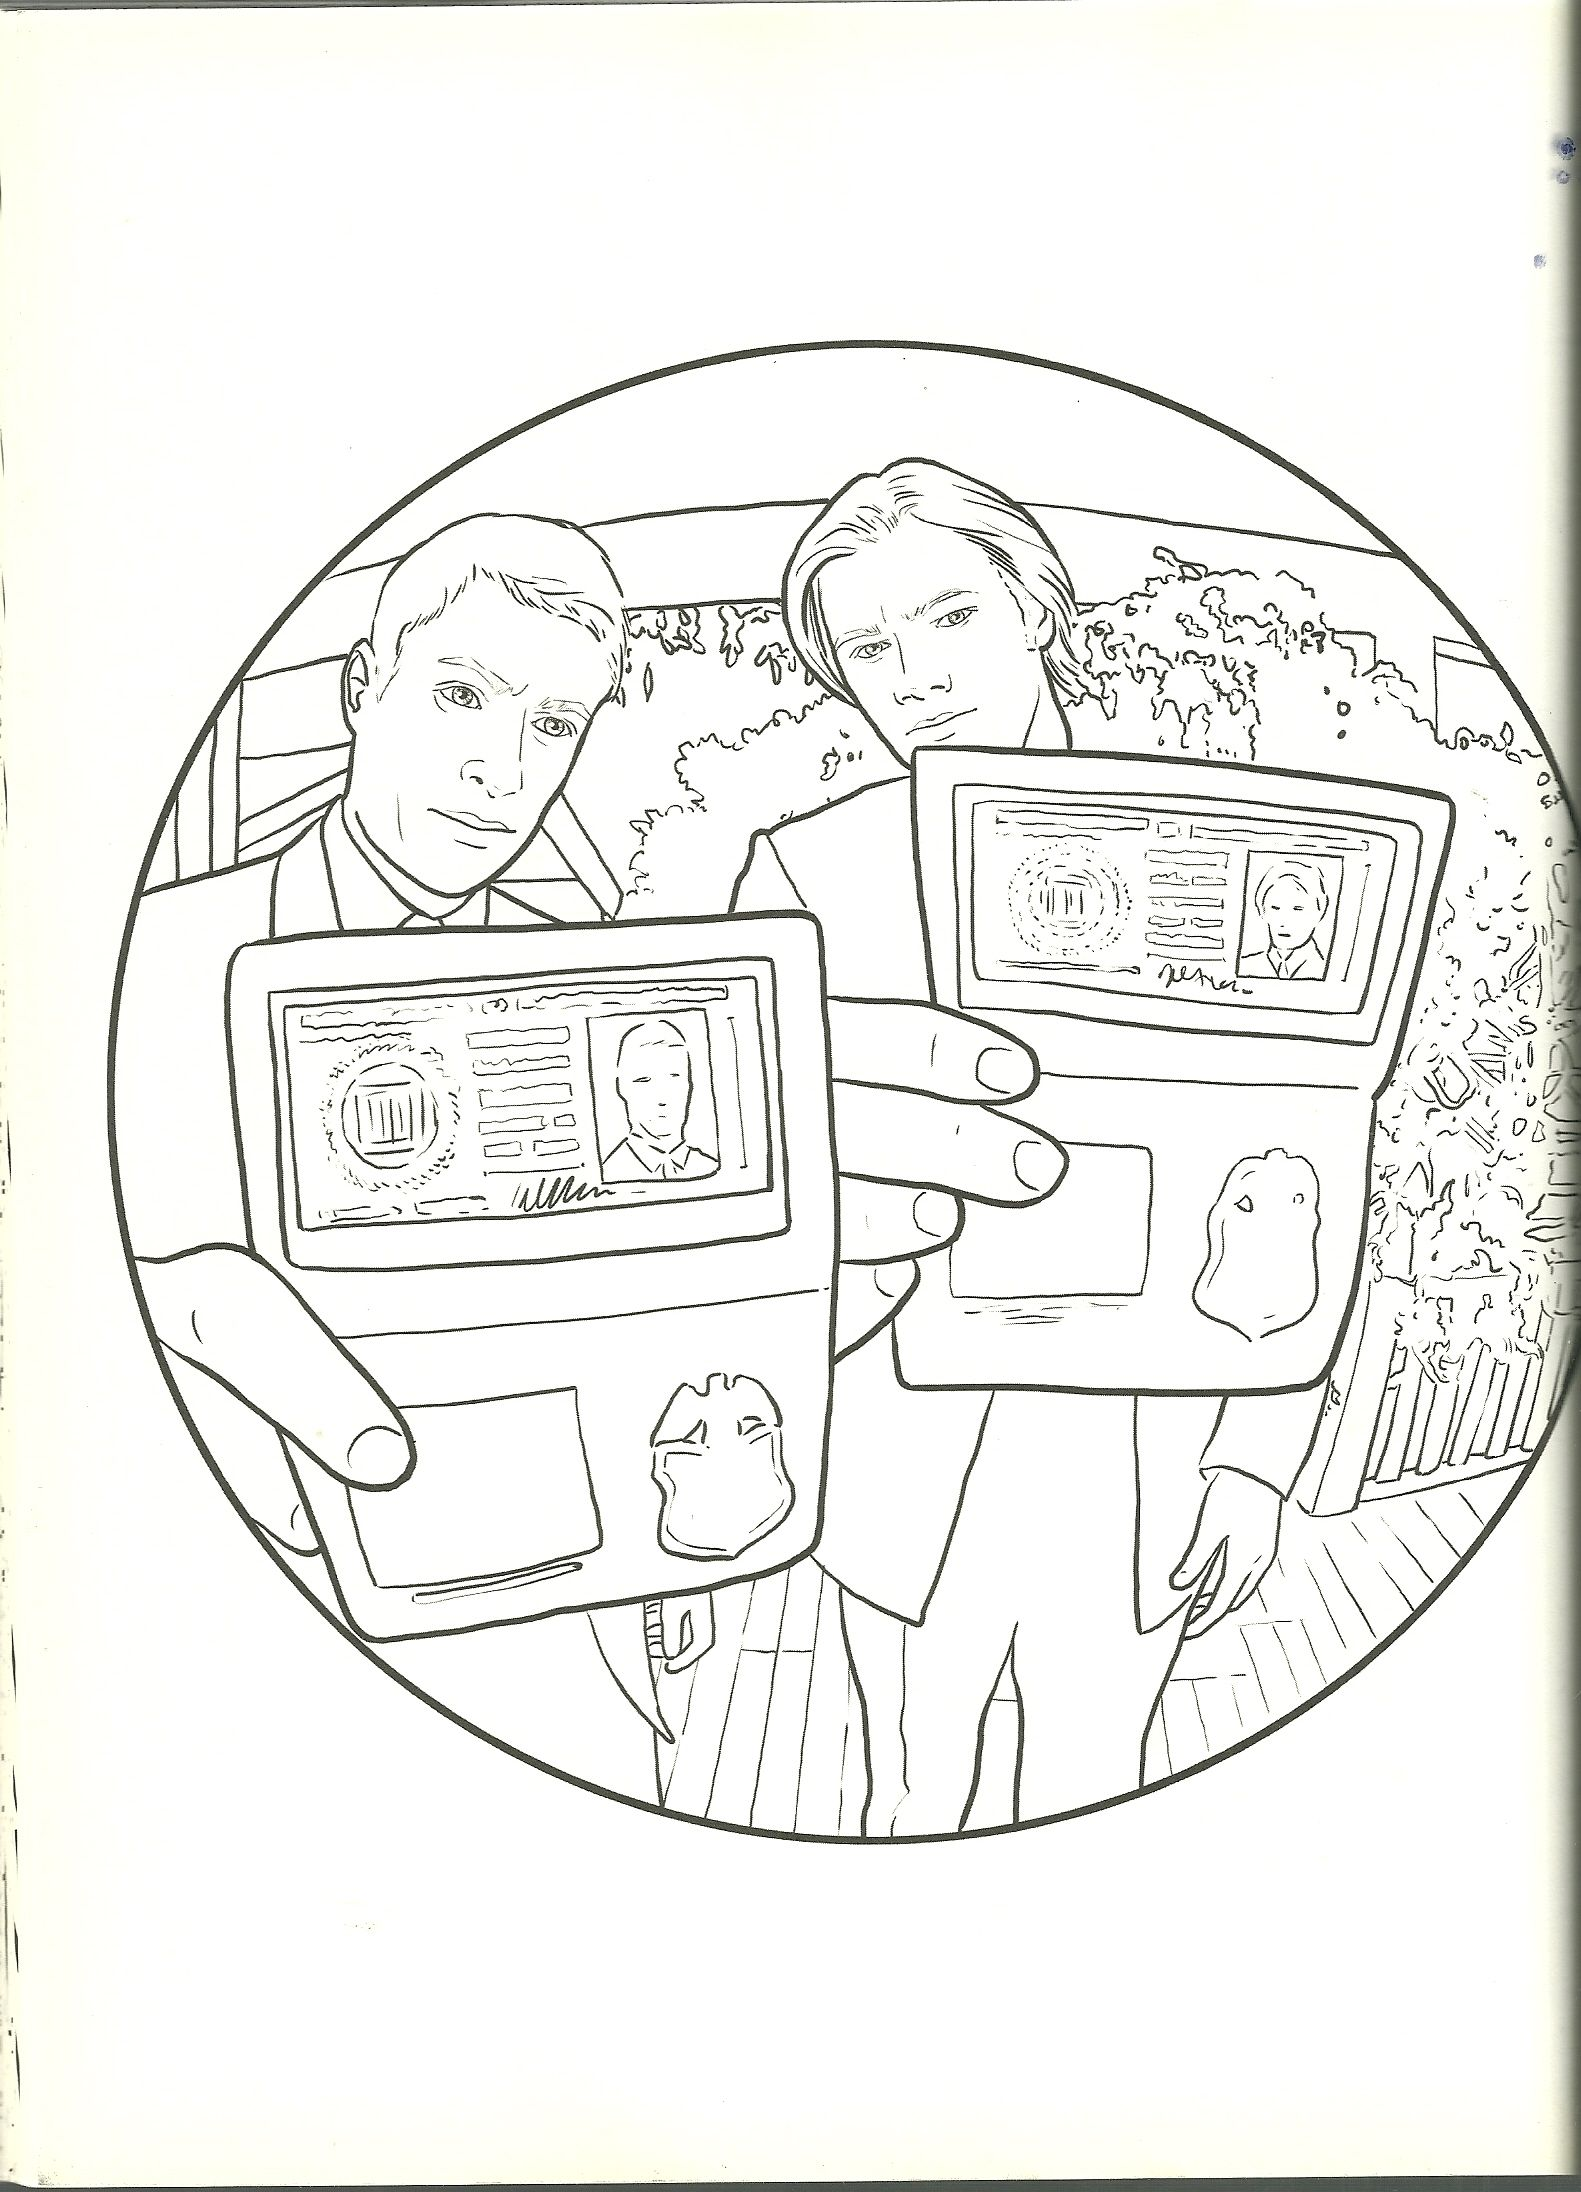 Sam And Dean Supernatural Coloring Page Coloring Pages Coloring Books Color